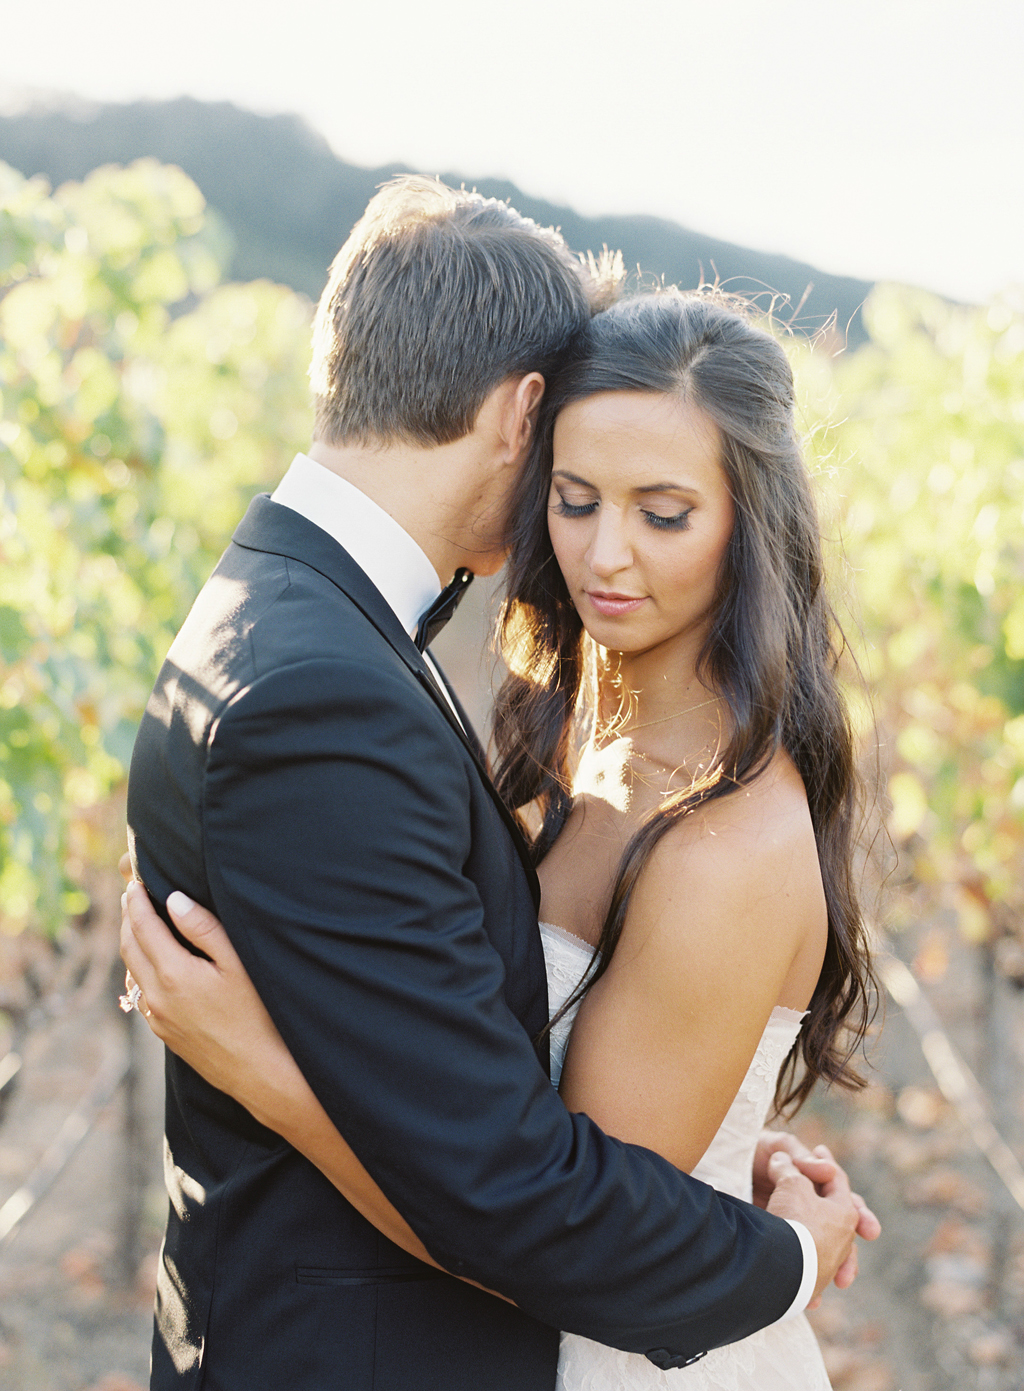 A couple embrace for a portrait in a napa vineyard shot on film photography.